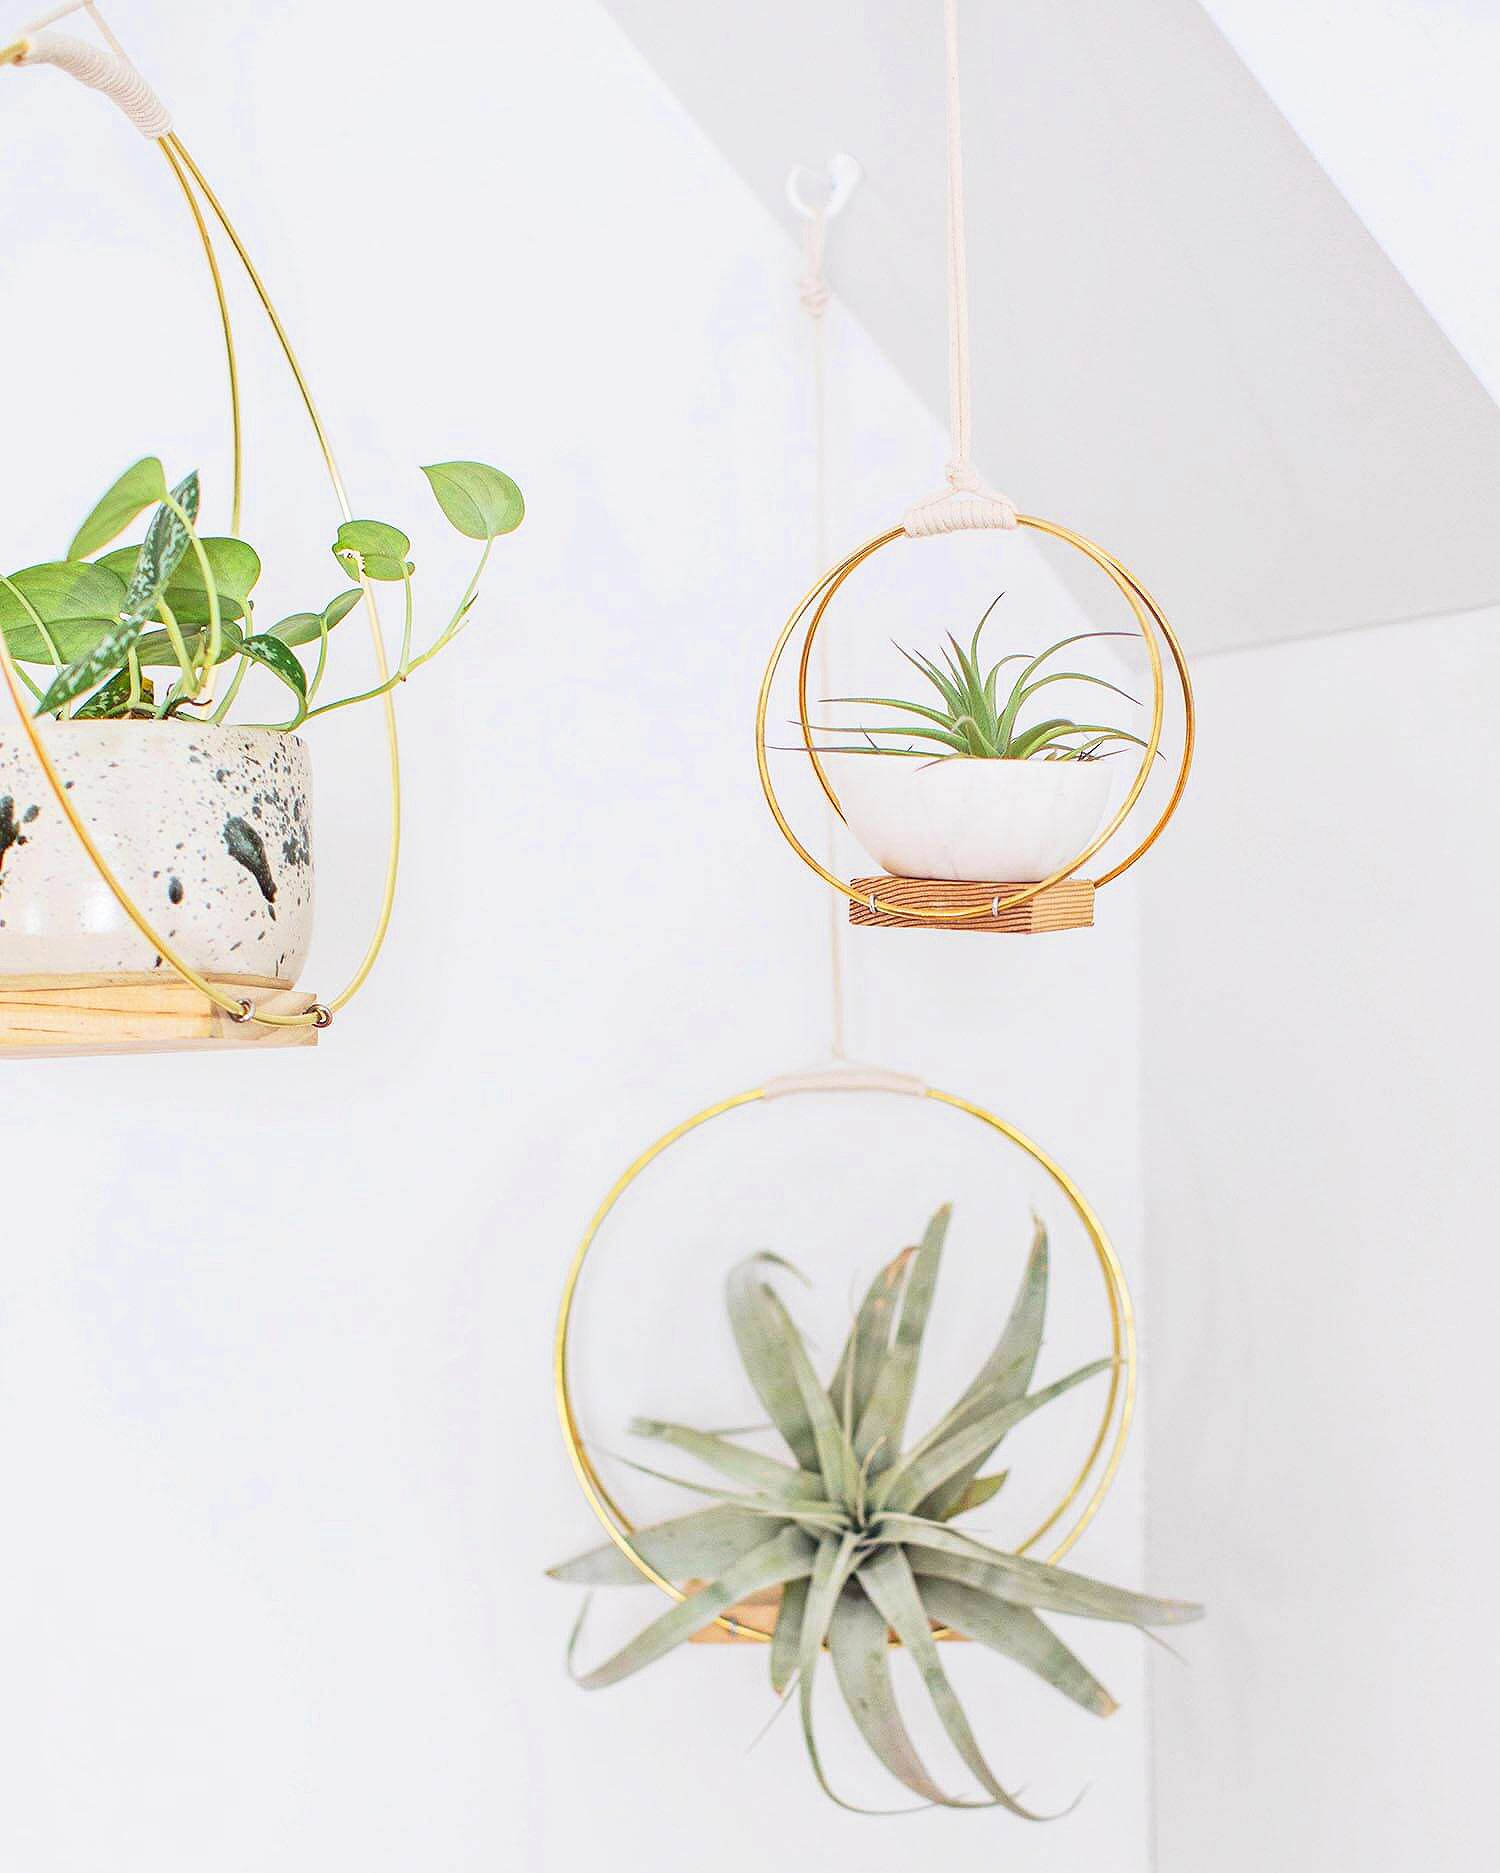 Brass Ring Hanging Planter DIY is part of Green Home Accessories Hanging Planters - This specific project came to me after seeing a photo of a midcentury log holder  I was in